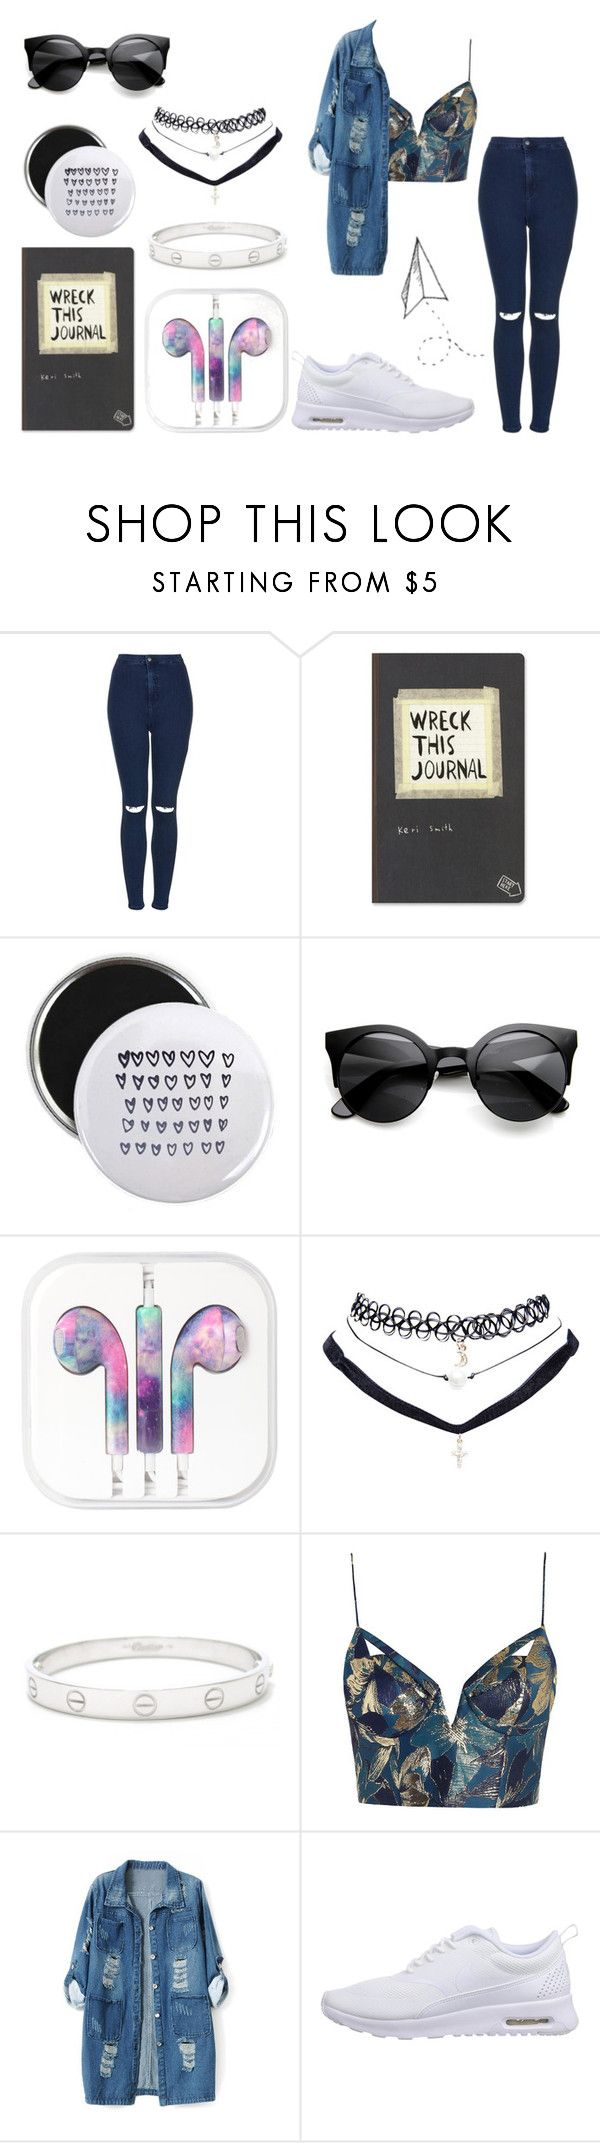 """See the stars before they fall"" by anajeps ❤ liked on Polyvore featuring Topshop, Wet Seal, Cartier, Zimmermann, Chicnova Fashion, NIKE, tumblr, stars, outfitoftheday and chill"